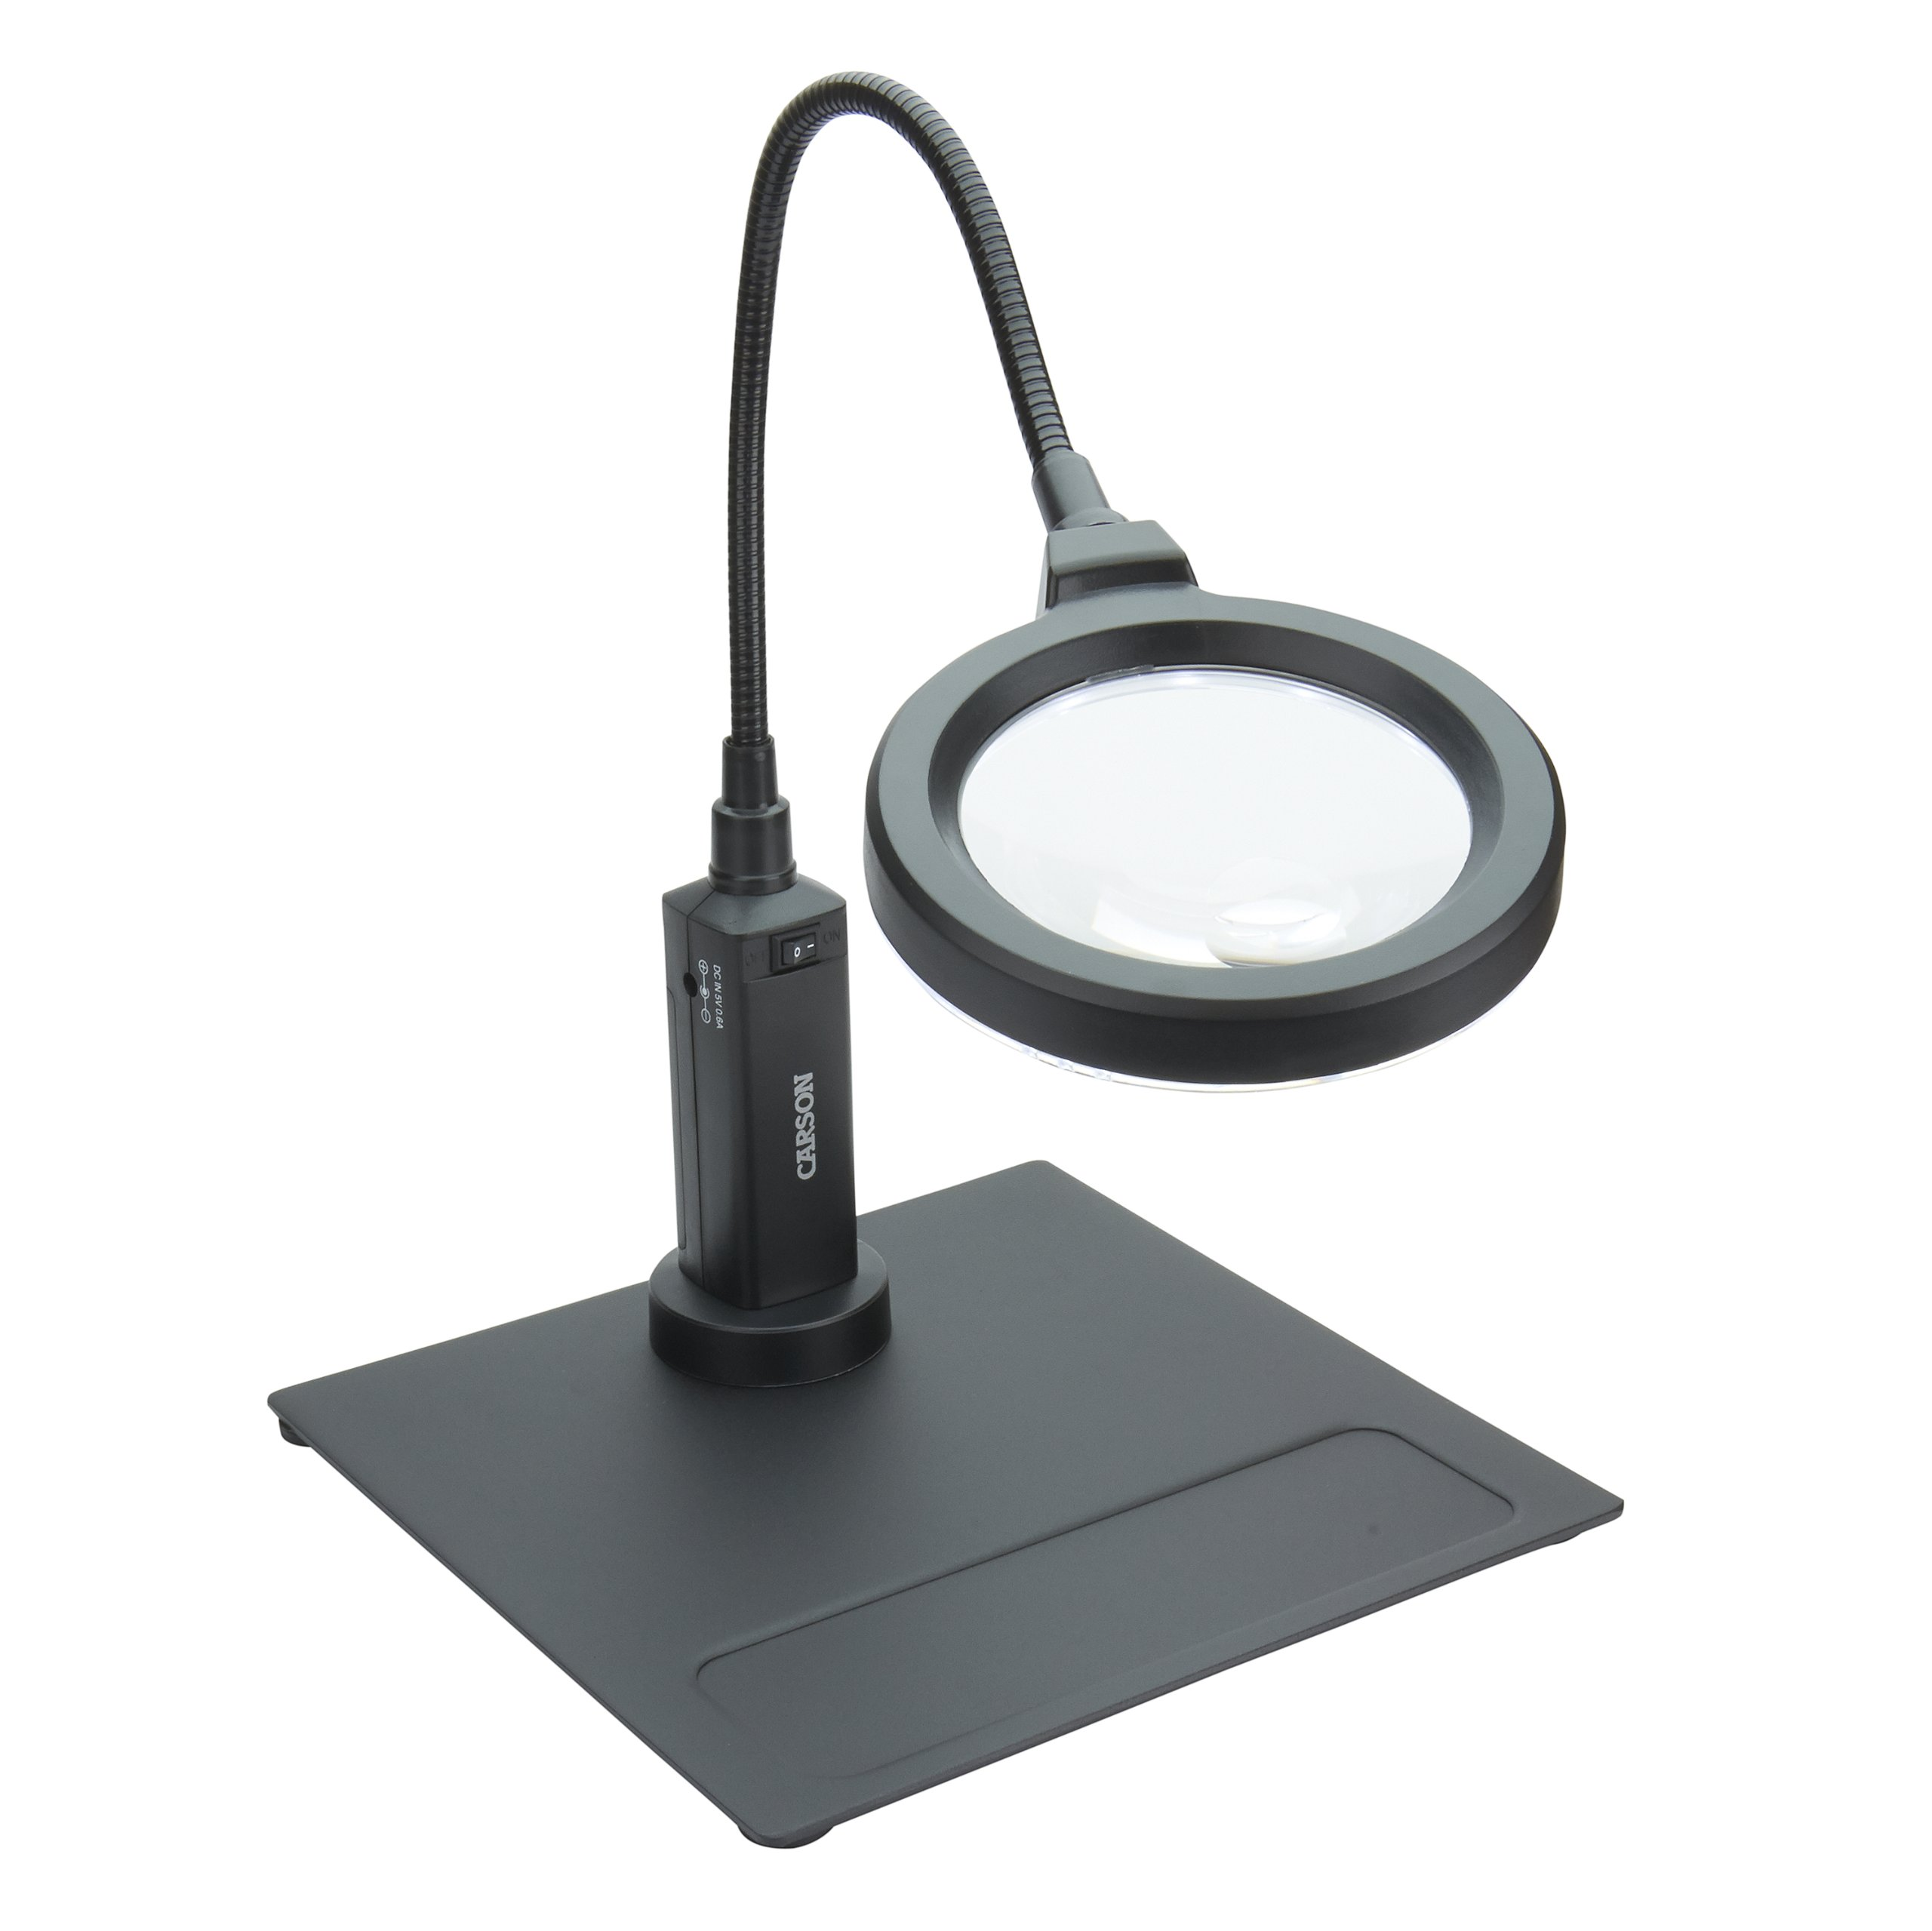 Carson MagniFlex Pro 2x LED Lighted Gooseneck Flexible Magnifier with 4x Spots Lens and Magnetic Base (CP-90)